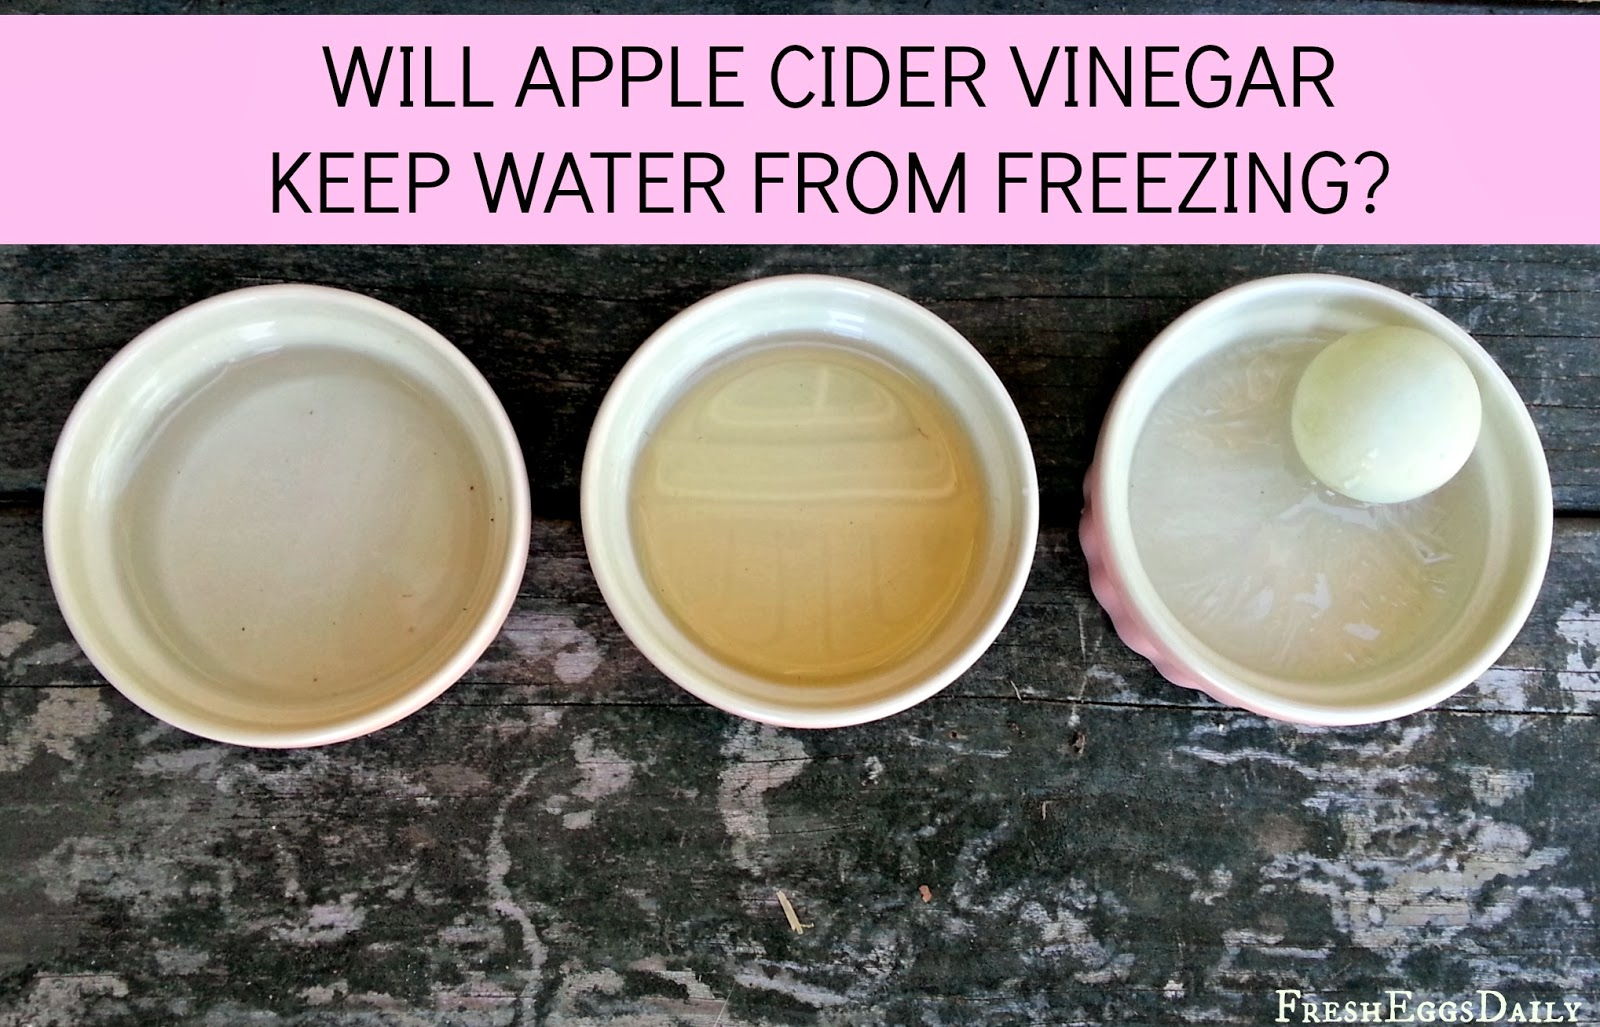 Does Apple Cider Vinegar Keep Water From Freezing?